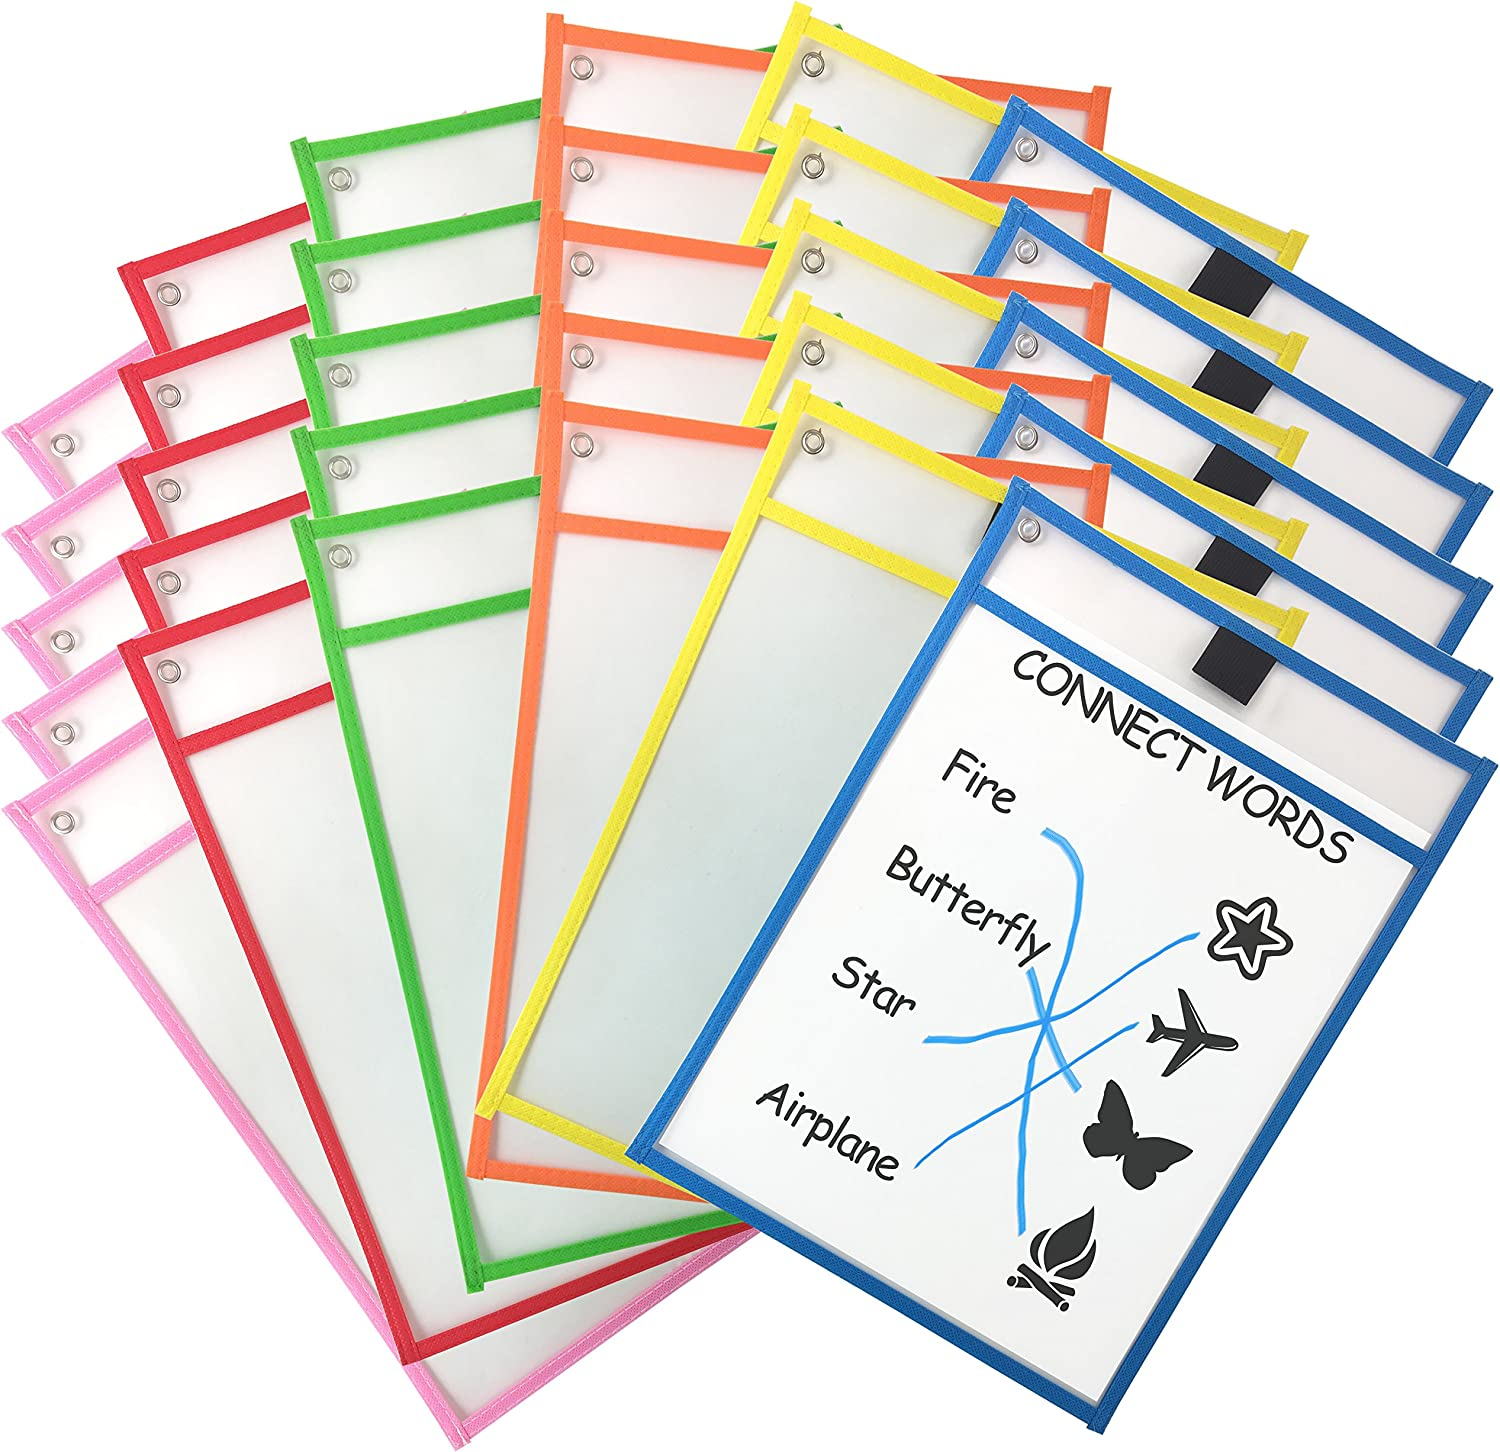 Clipco Dry Erase Pocket Sleeves Assorted Colors (30-Pack) : Office Products